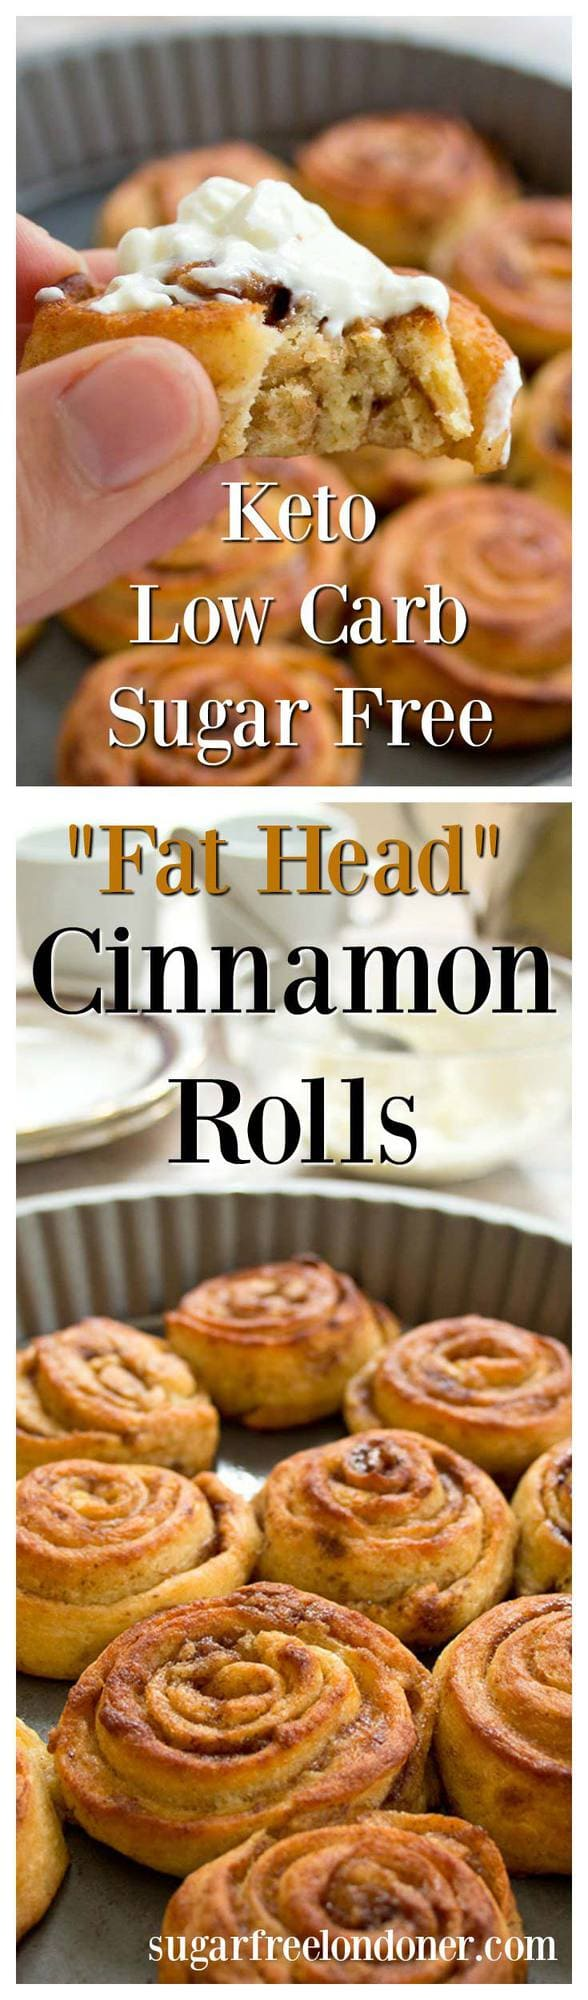 Keto Cinnamon Rolls Sugar Free Low Carb Sugar Free